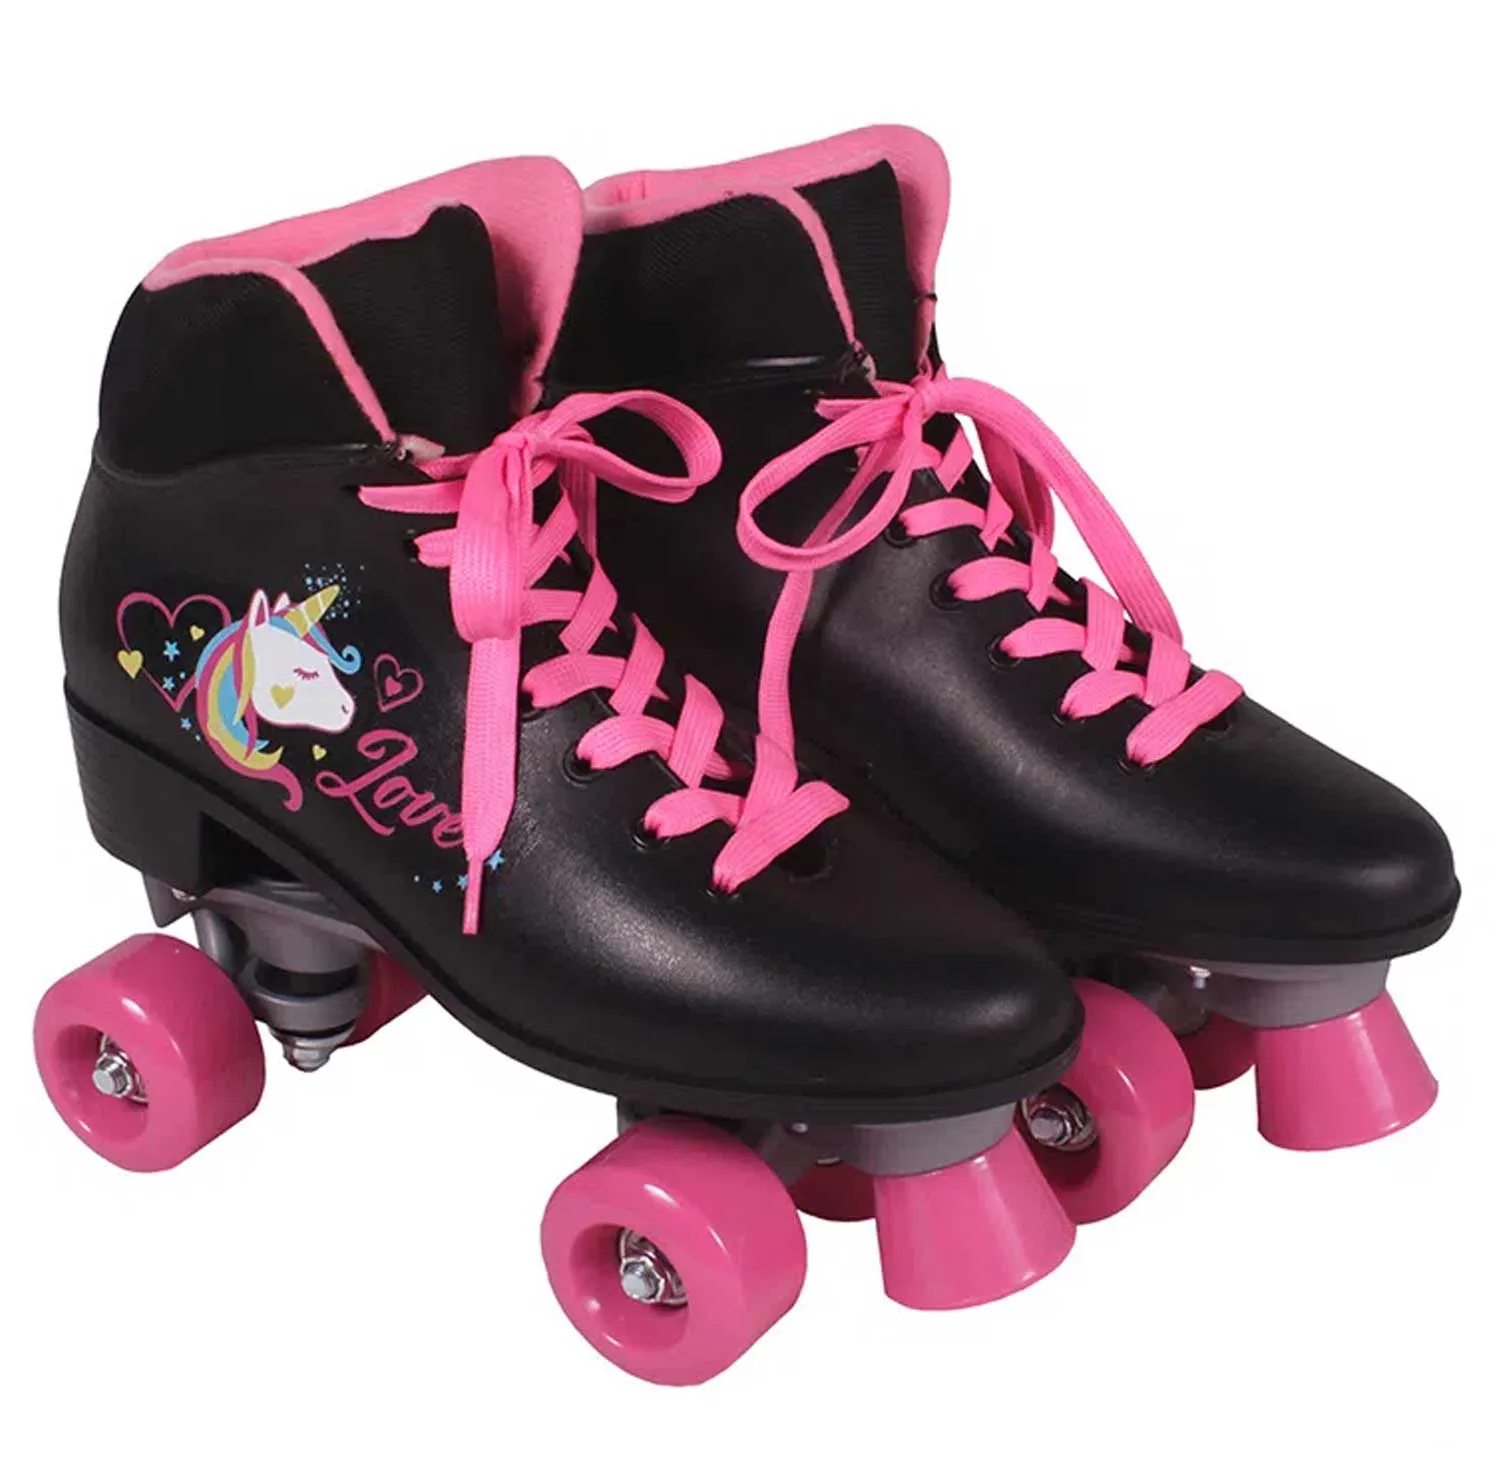 PATINS QUAD LOVE UNICÓRNIO BEL FIX REF:383600 TAM:36